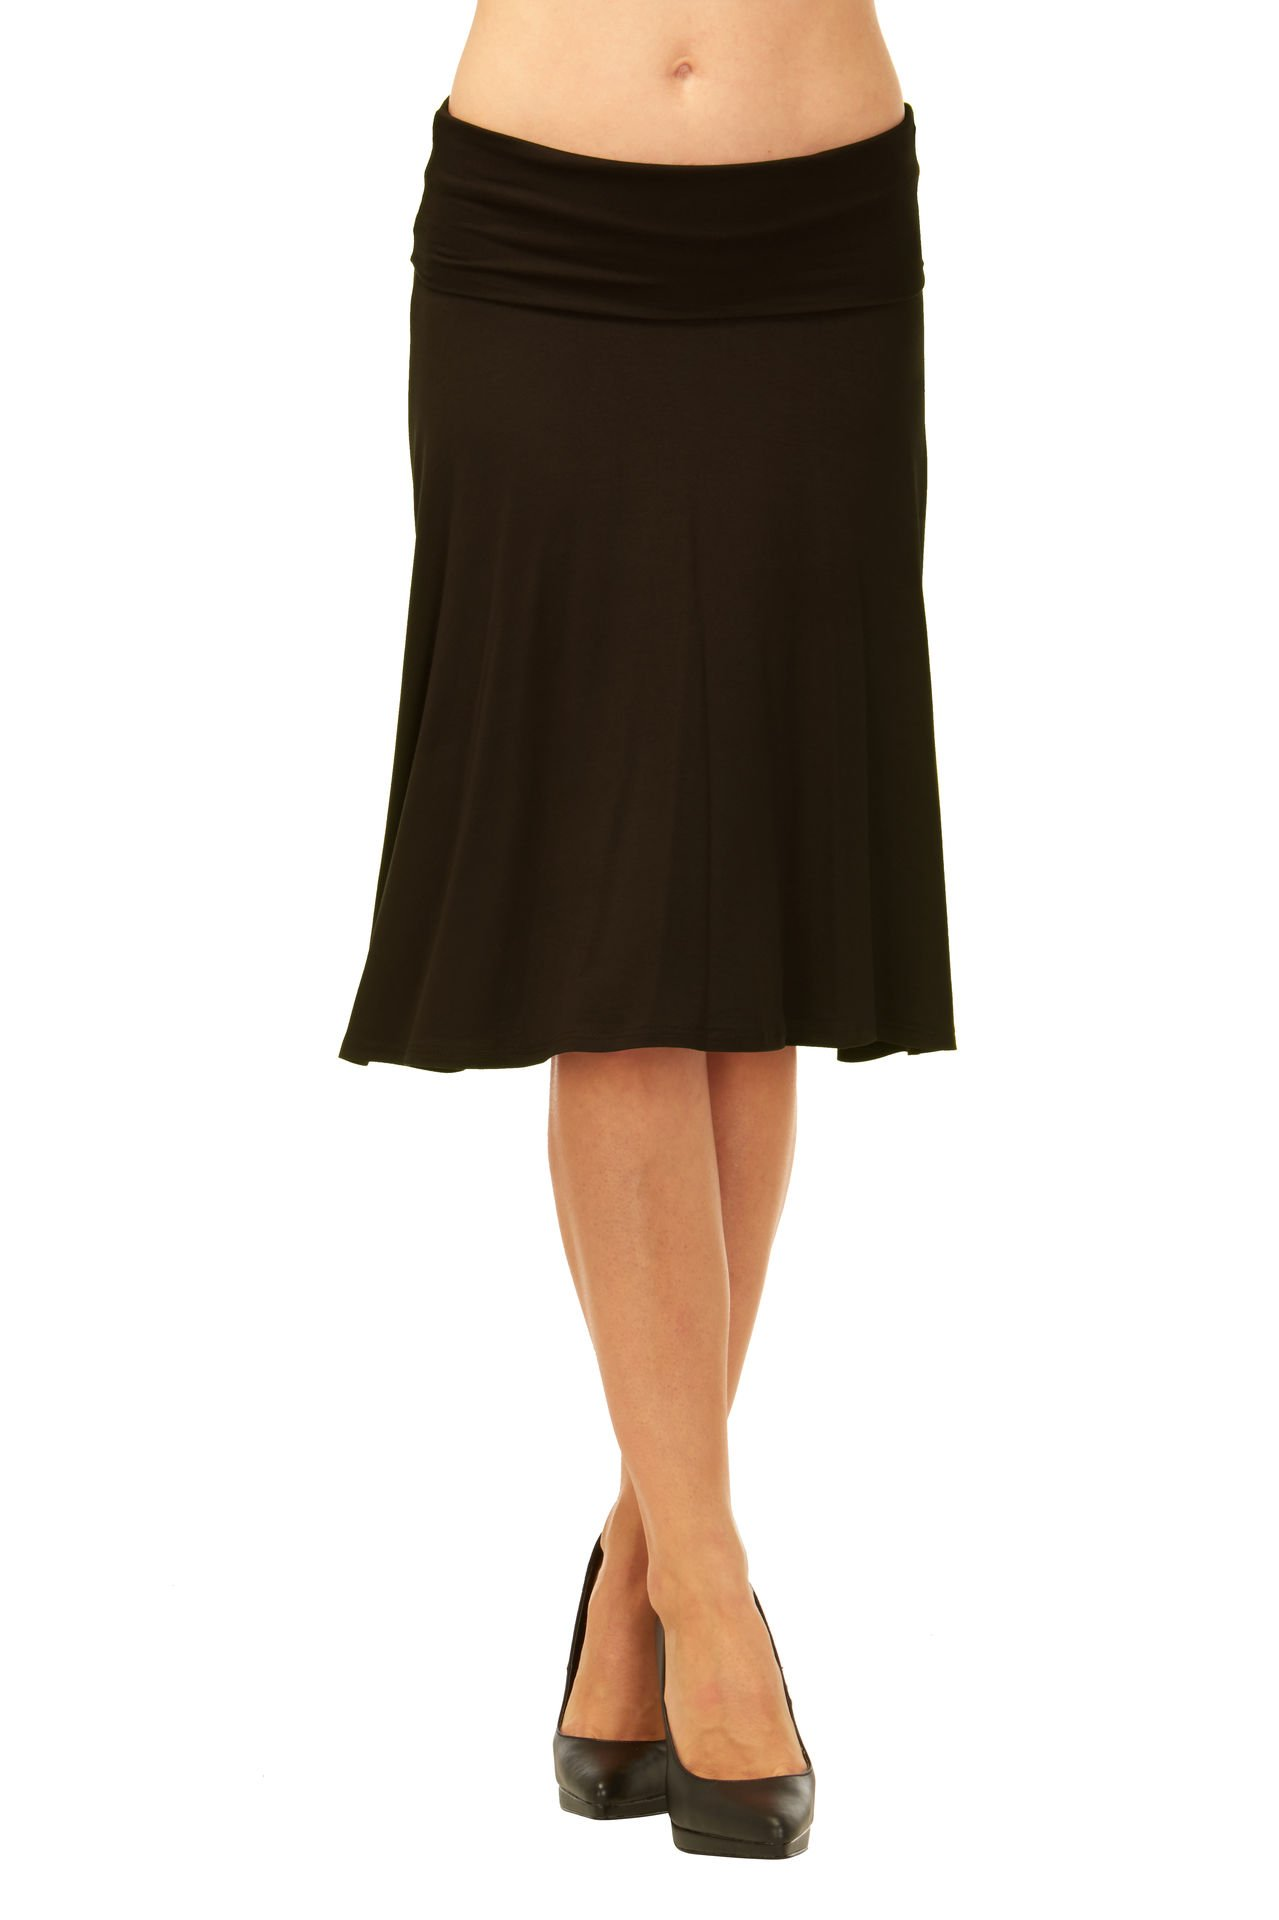 Red Hanger Womens Basic Solid Stretch Fold-Over Flare Midi Skirt (Black-L) by Red Hanger